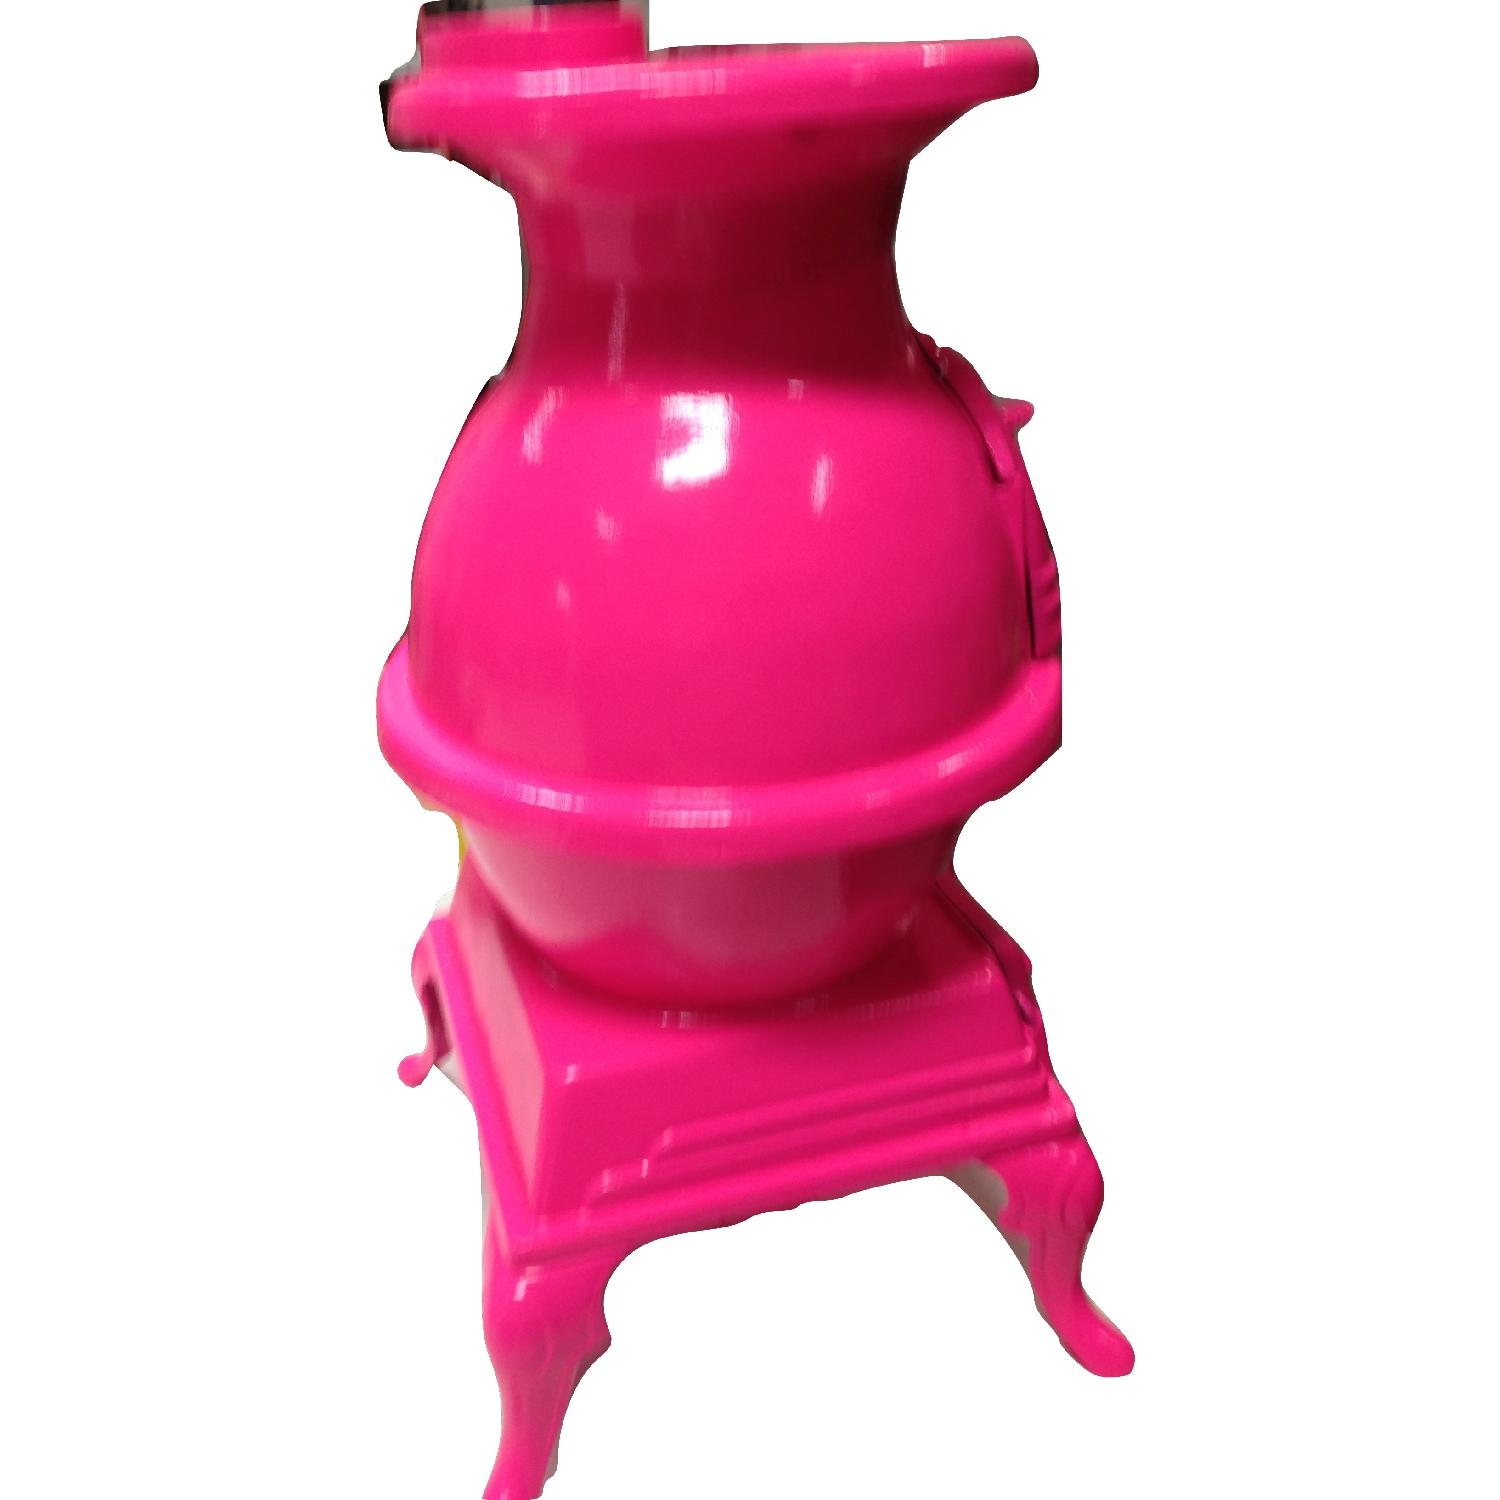 Hot Pink Pot Belly Stove-9